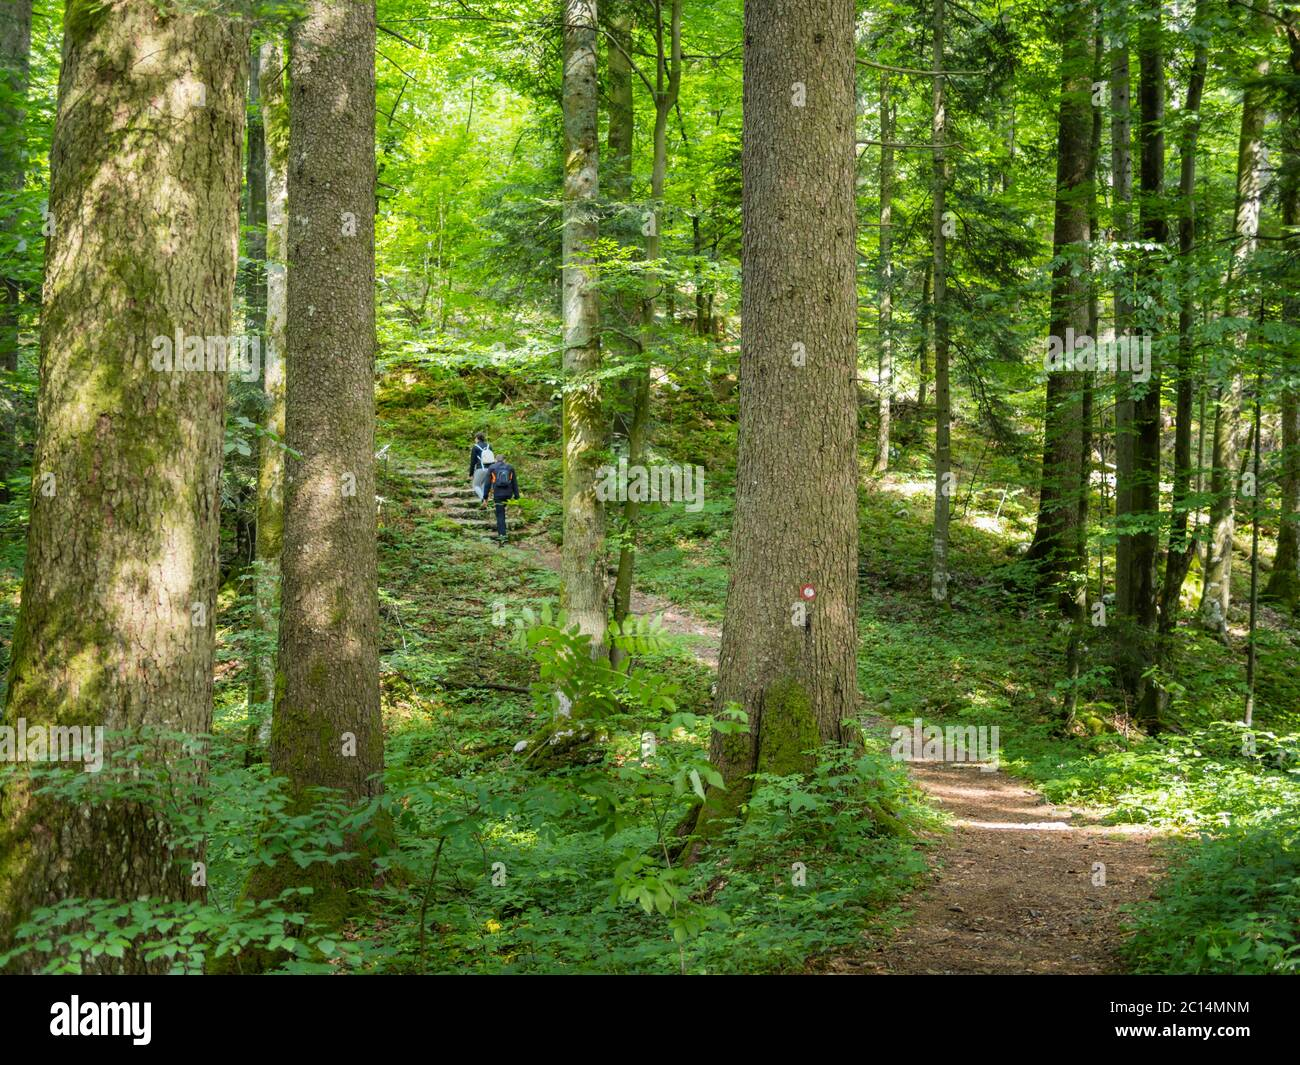 Young couple enjoying walking through dense Green forest protected Golubinjak Lokve Croatia Europe well beaten trail marked path amongst vegetation Stock Photo